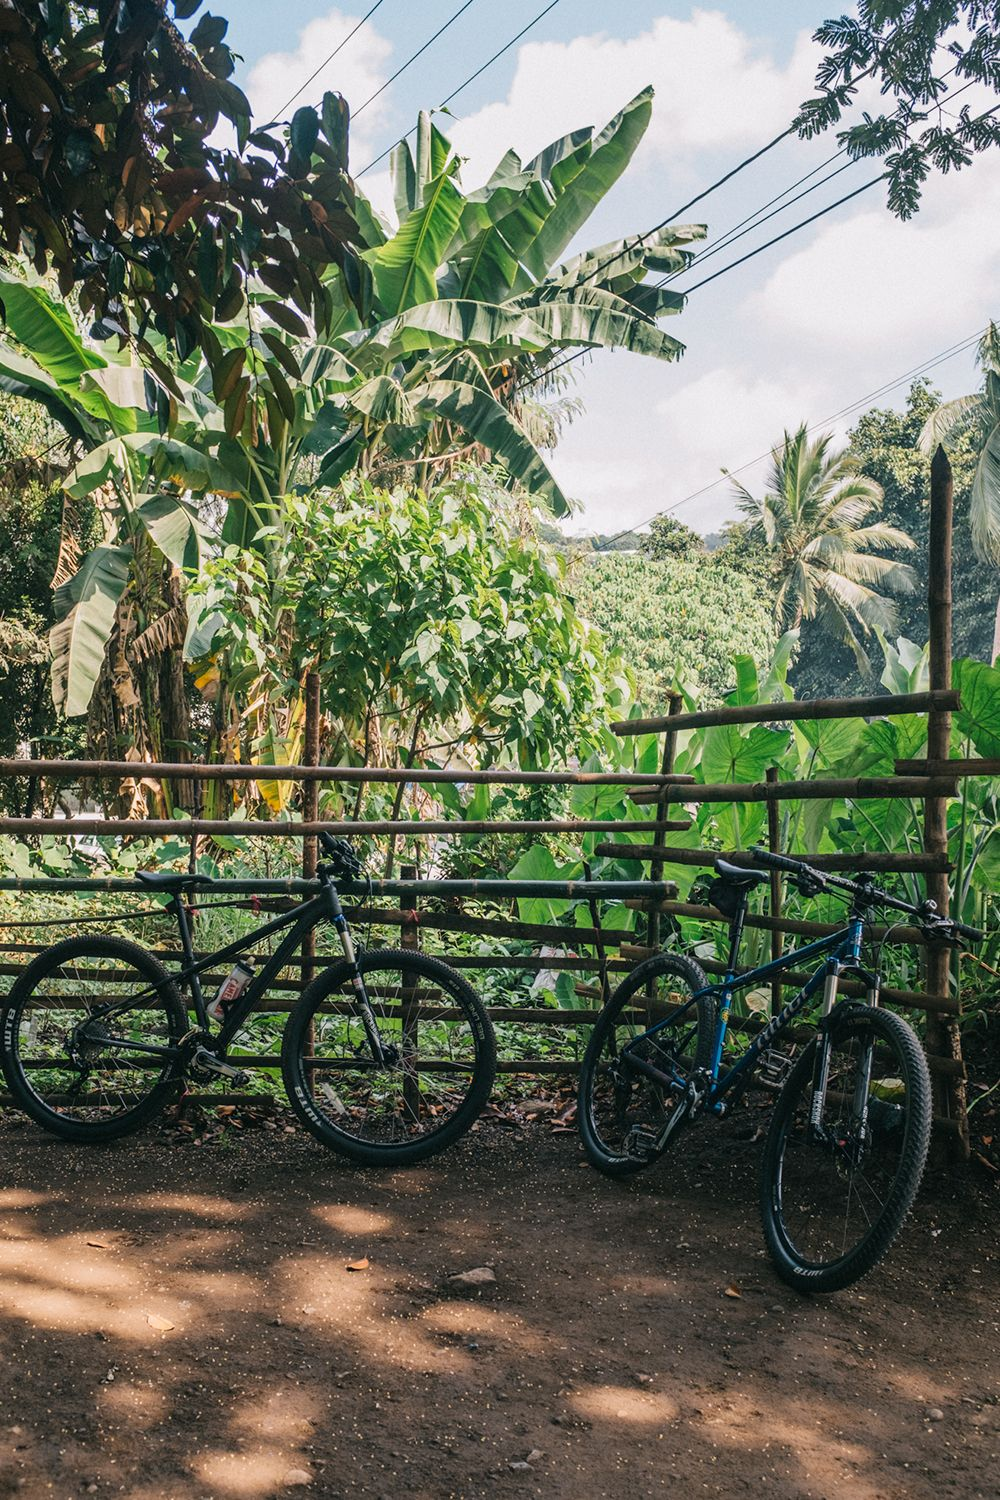 A pair of bikes lean against a bamboo fence